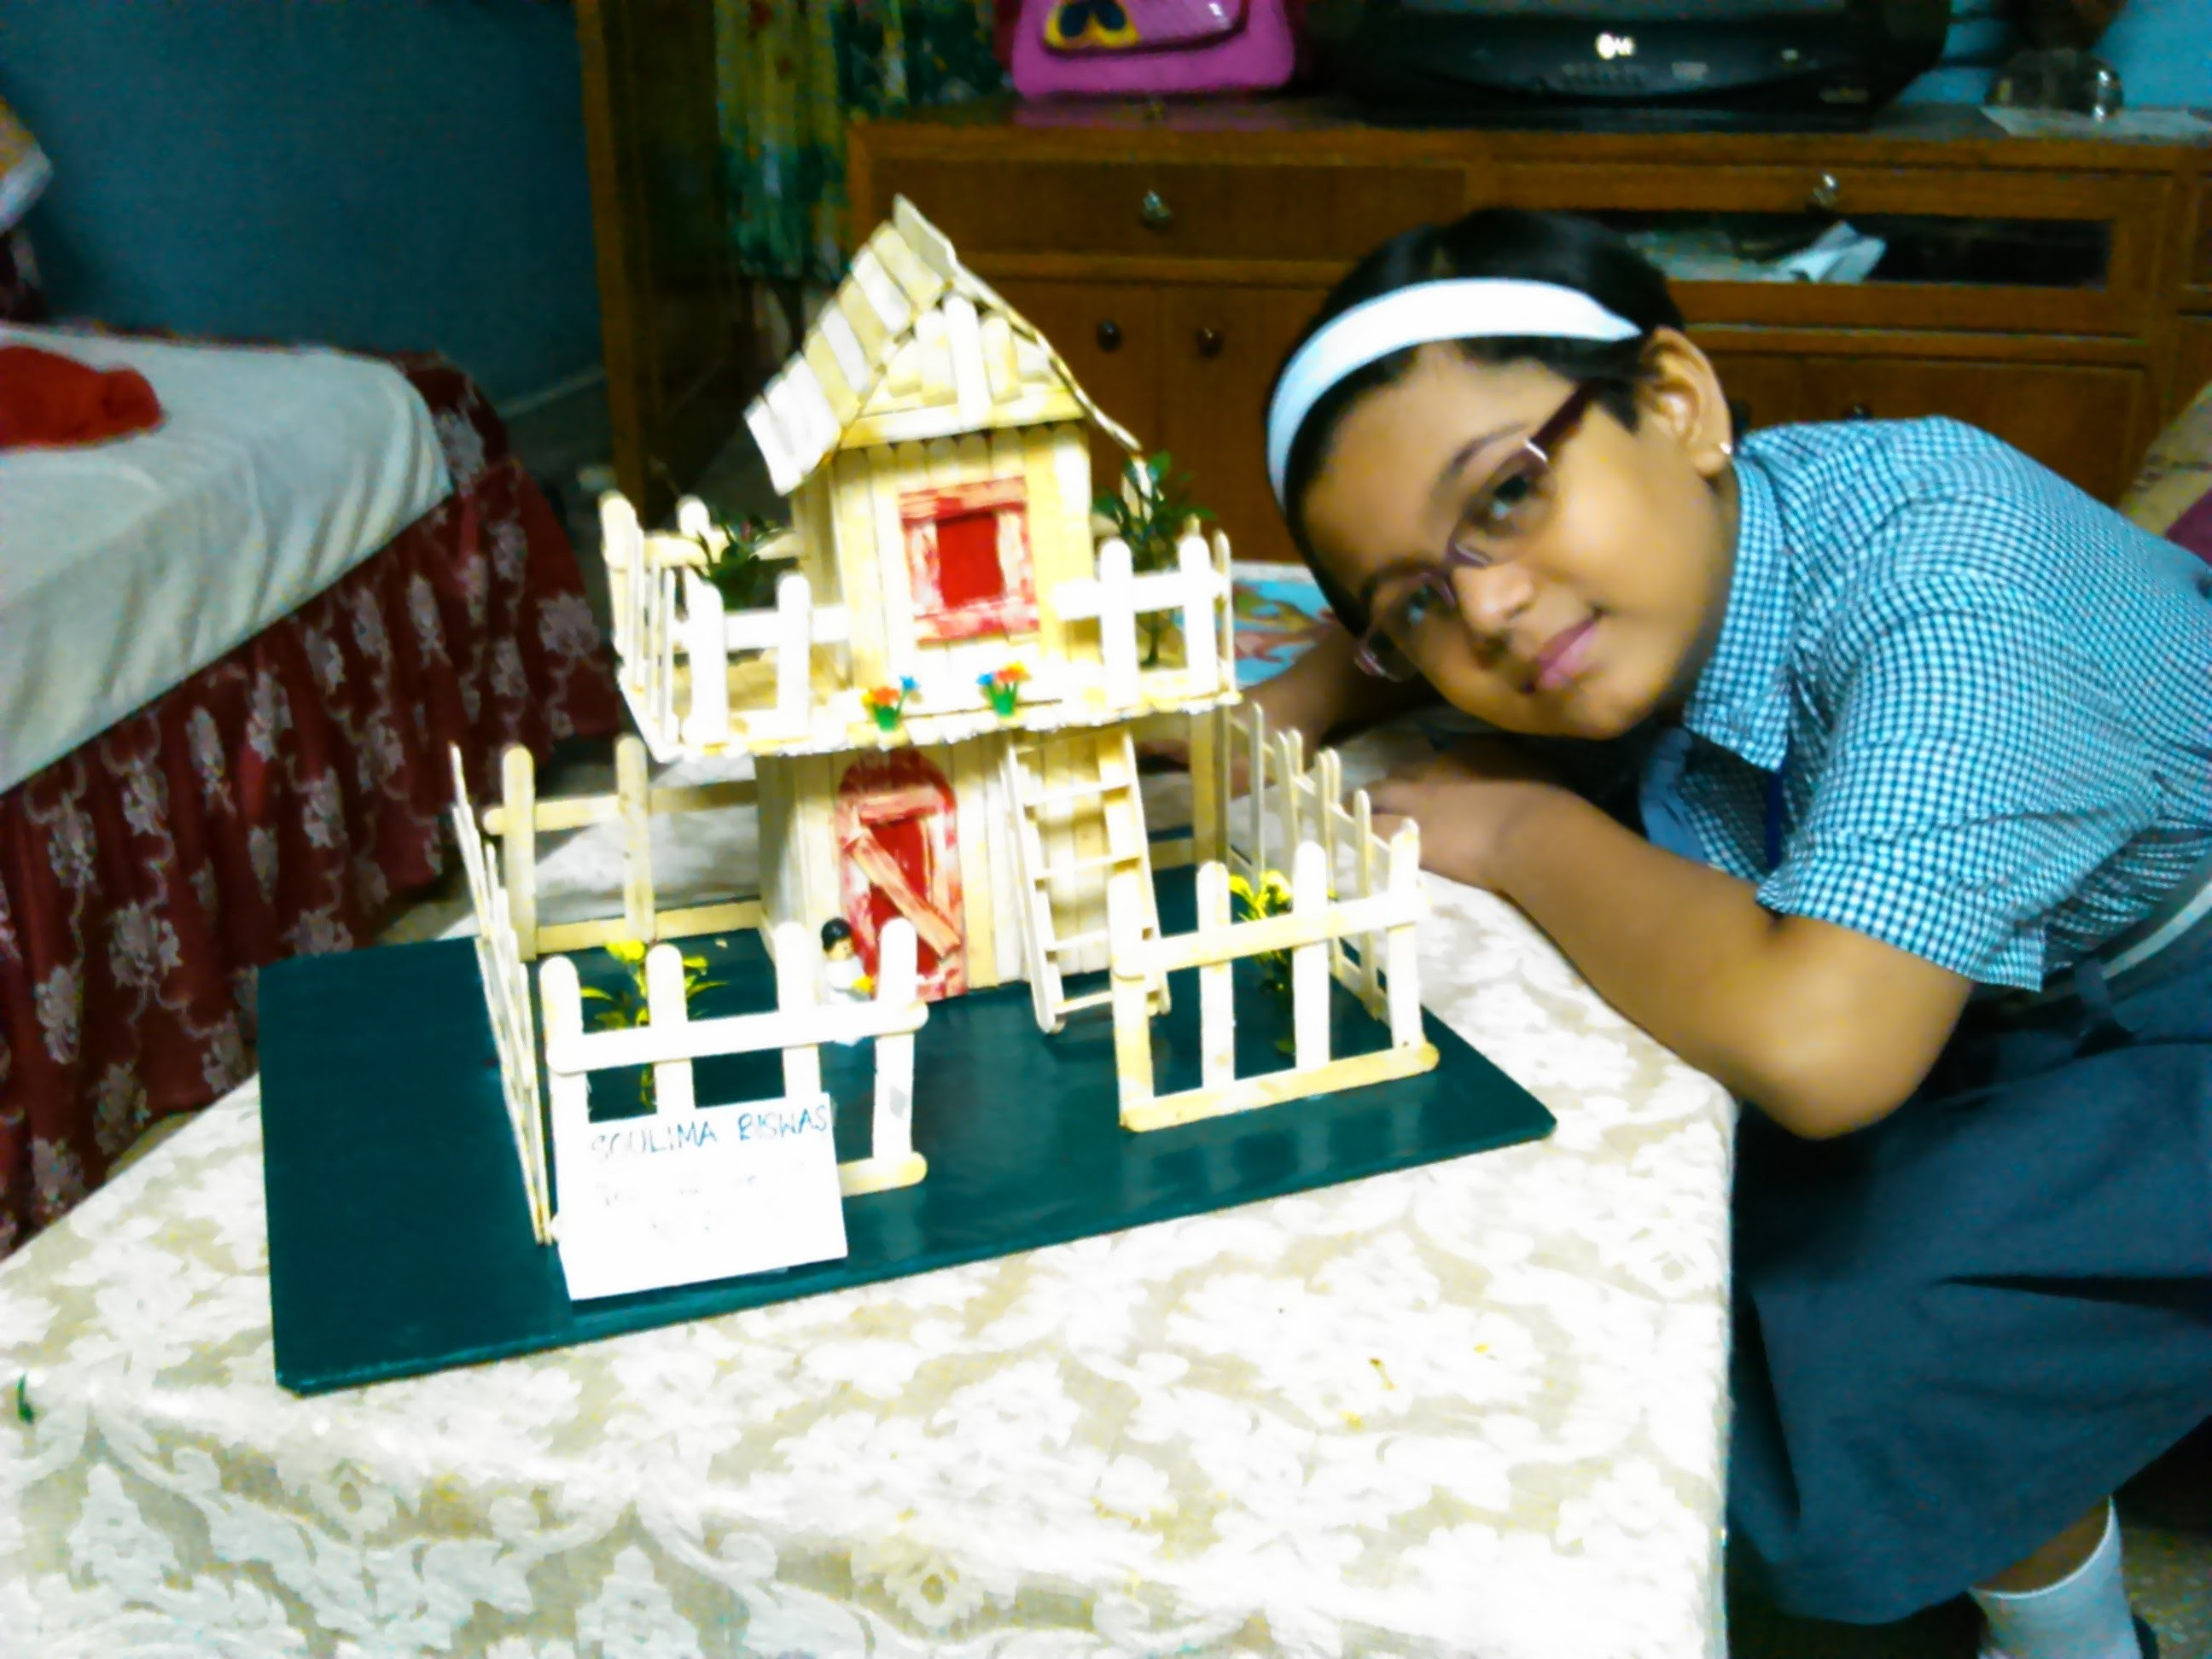 How to build Ice-cream stick house - Craft Popsicle stick house